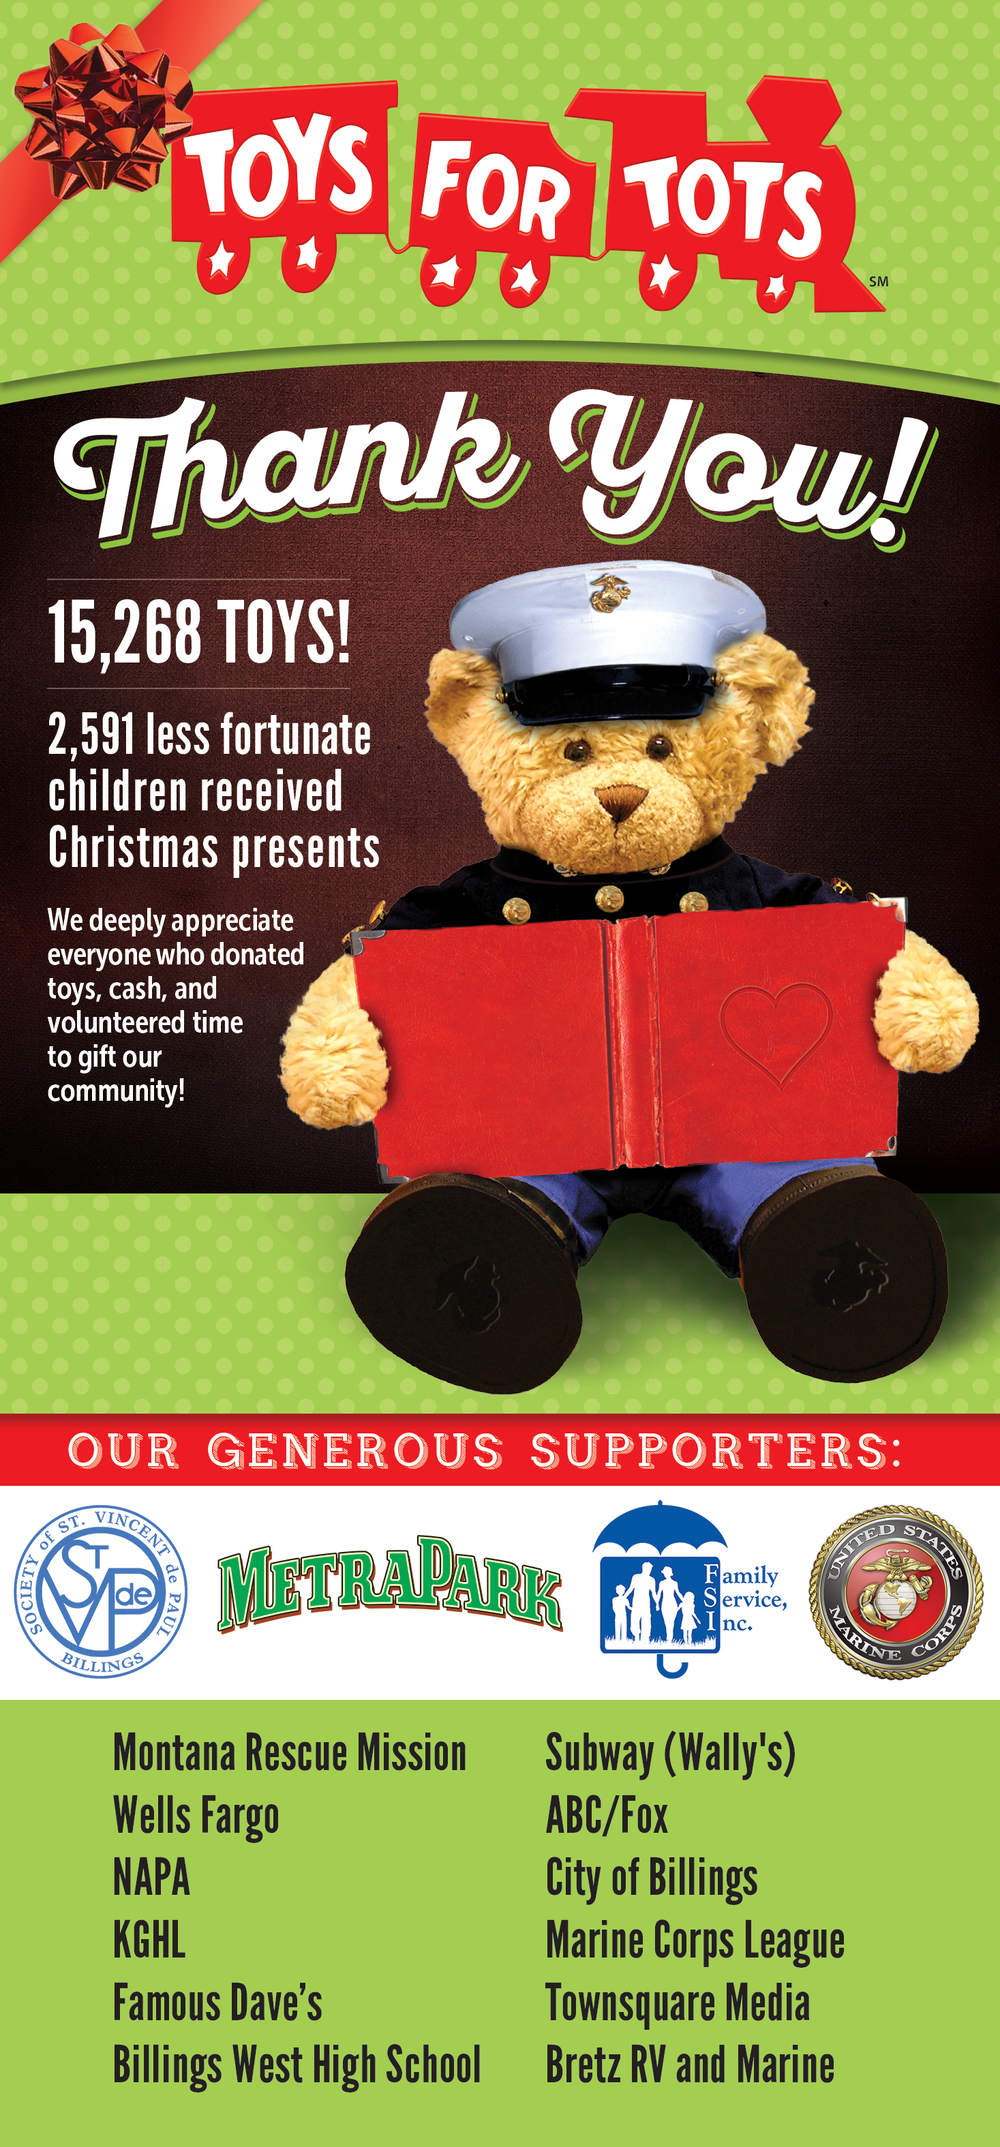 ToysforTots_proof2.jpg